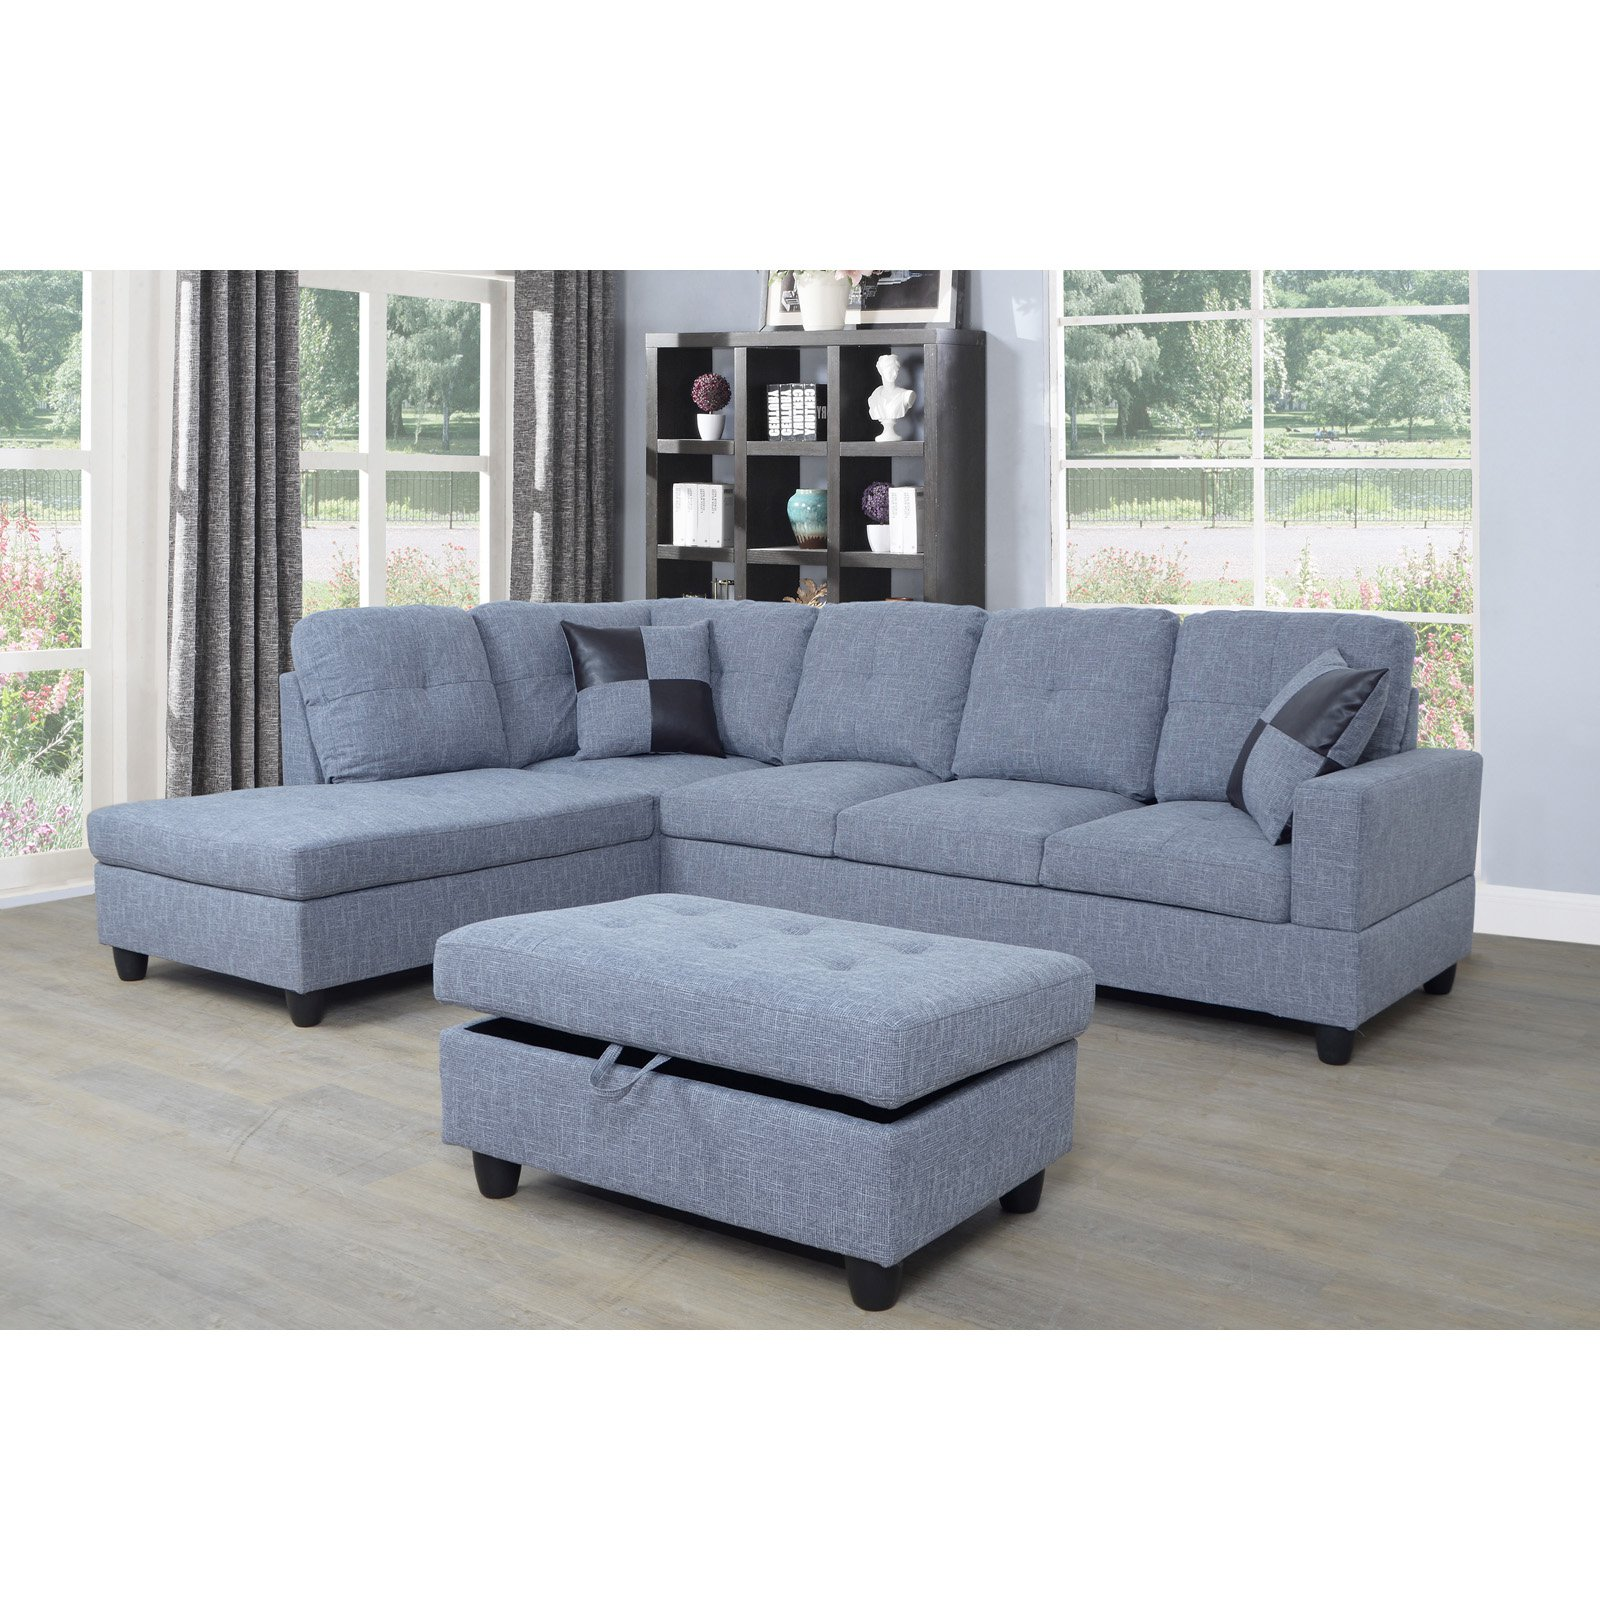 Beverly Fine Furniture 3 Piece Light Gray Microfiber Sectional Sofa